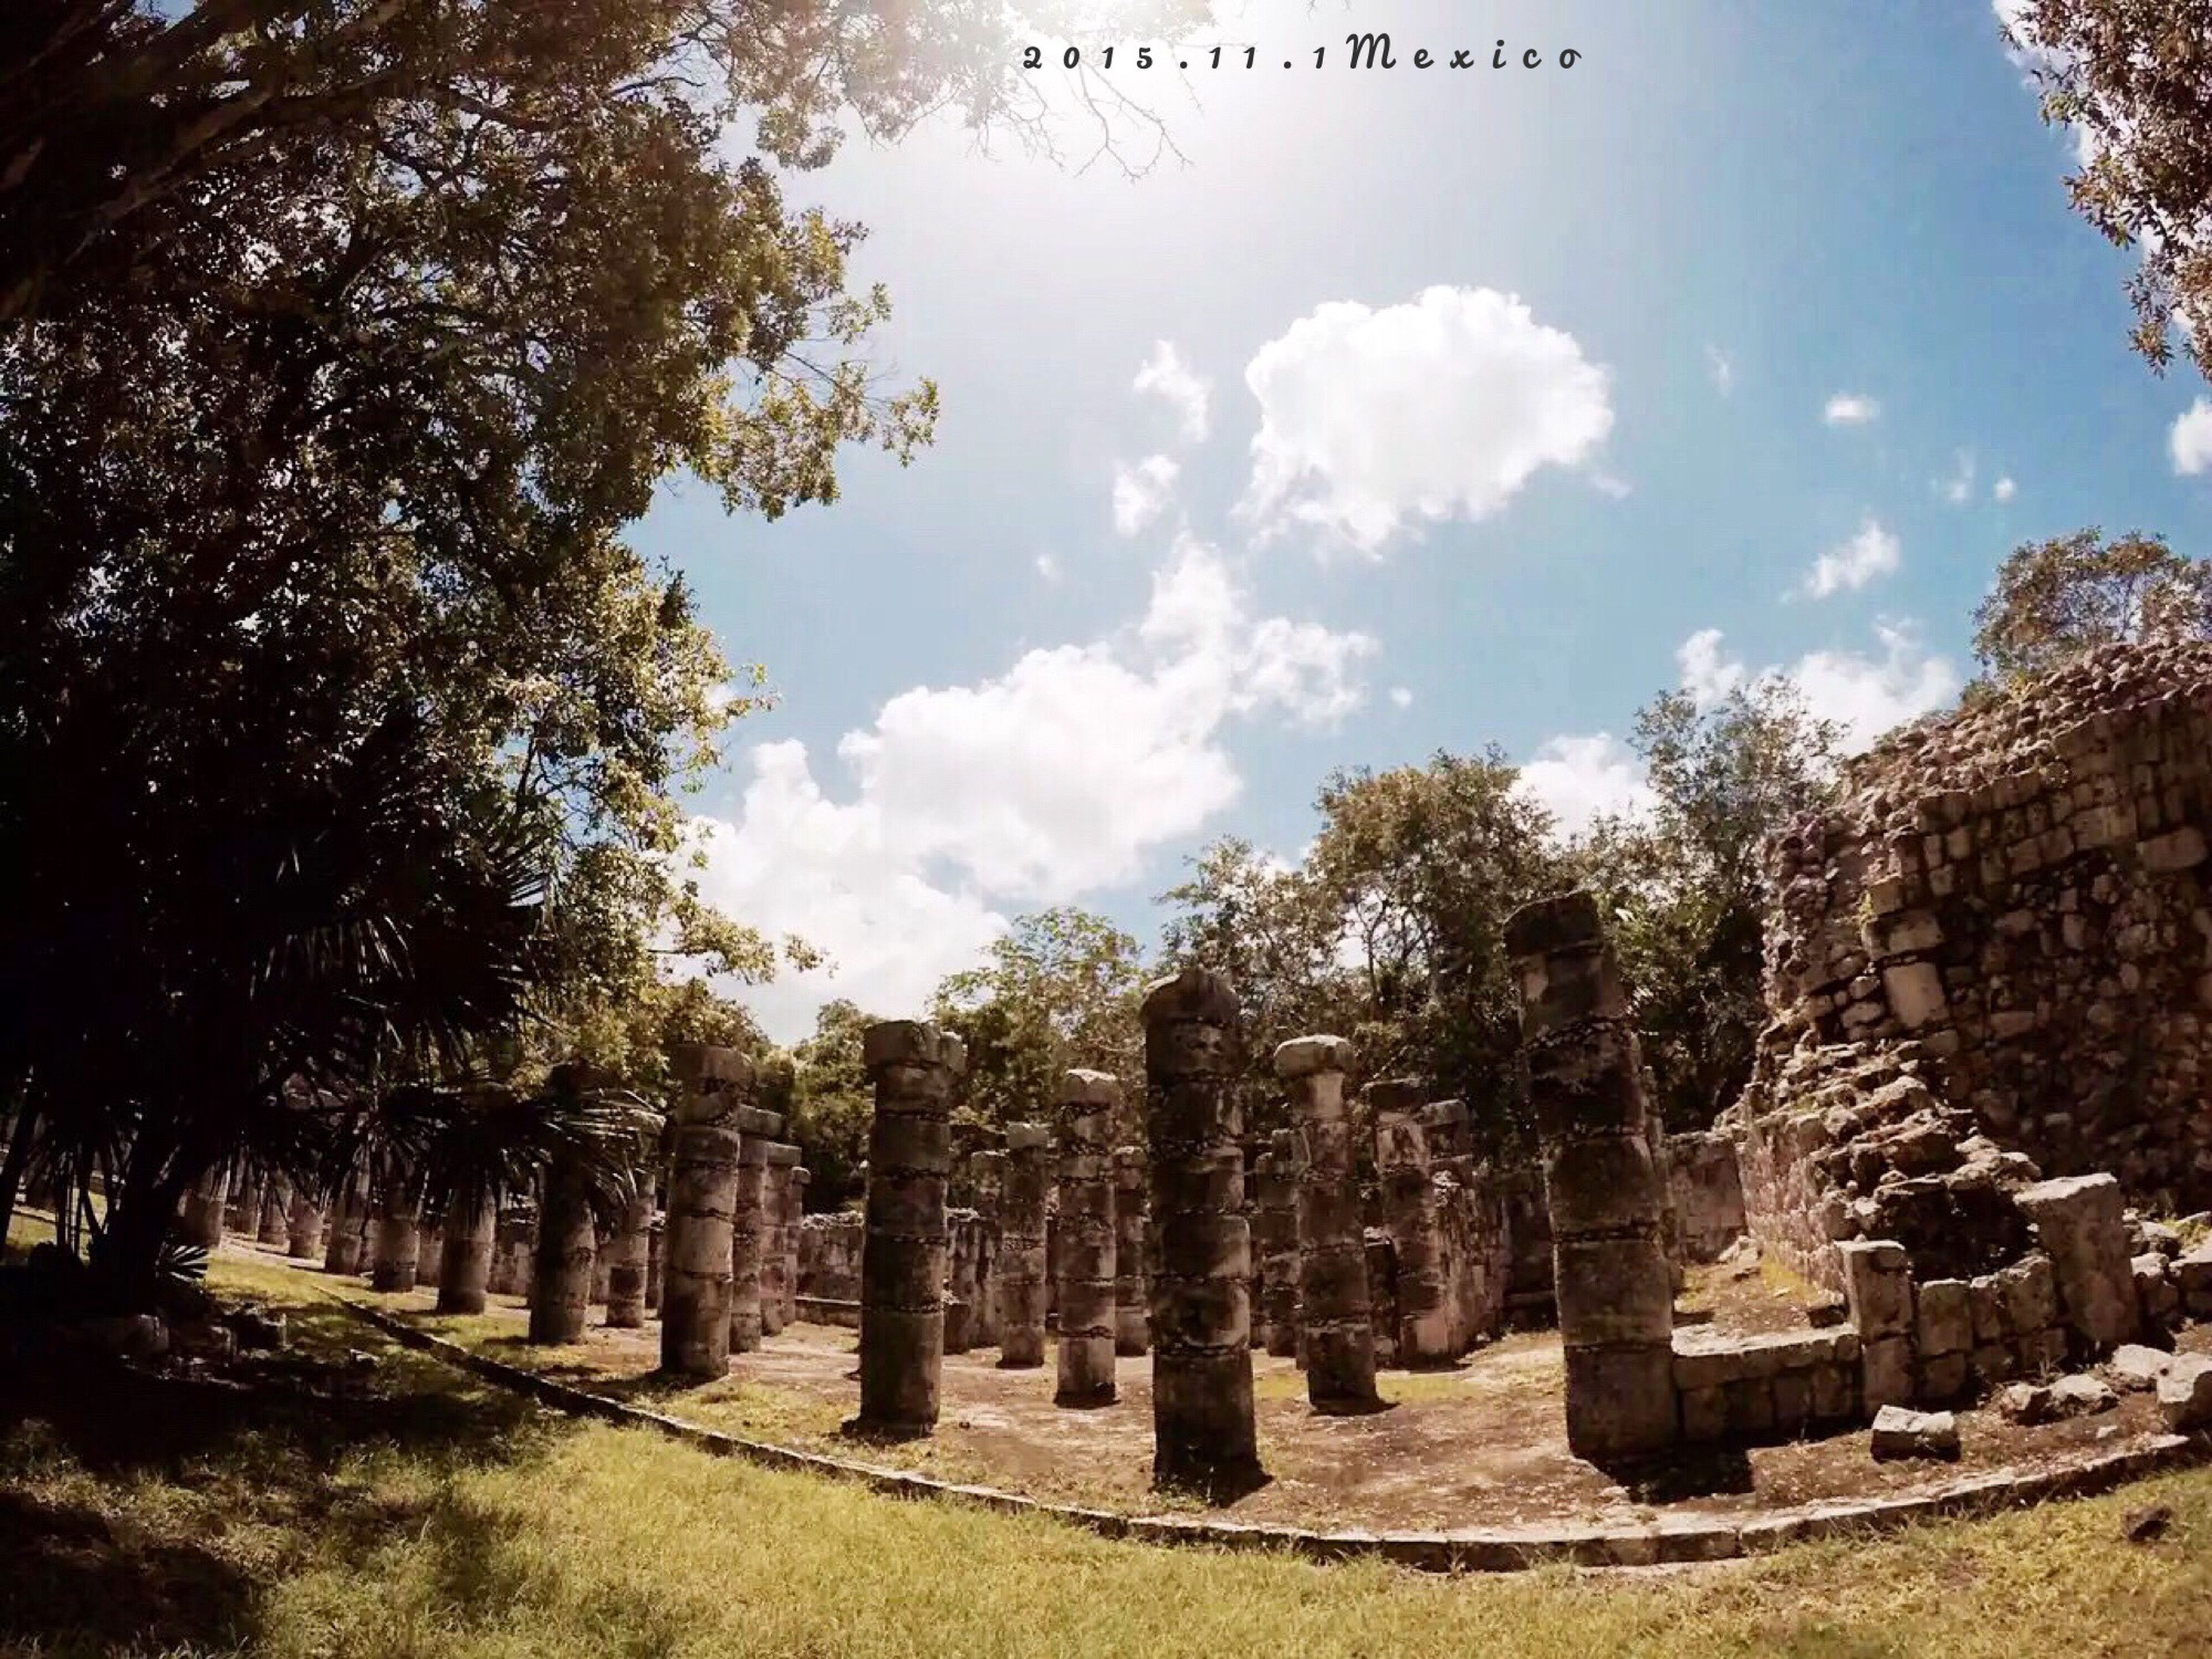 tree, sky, tranquility, growth, cemetery, old, tombstone, the past, built structure, history, nature, old ruin, day, field, architecture, ancient, outdoors, cloud - sky, no people, tranquil scene